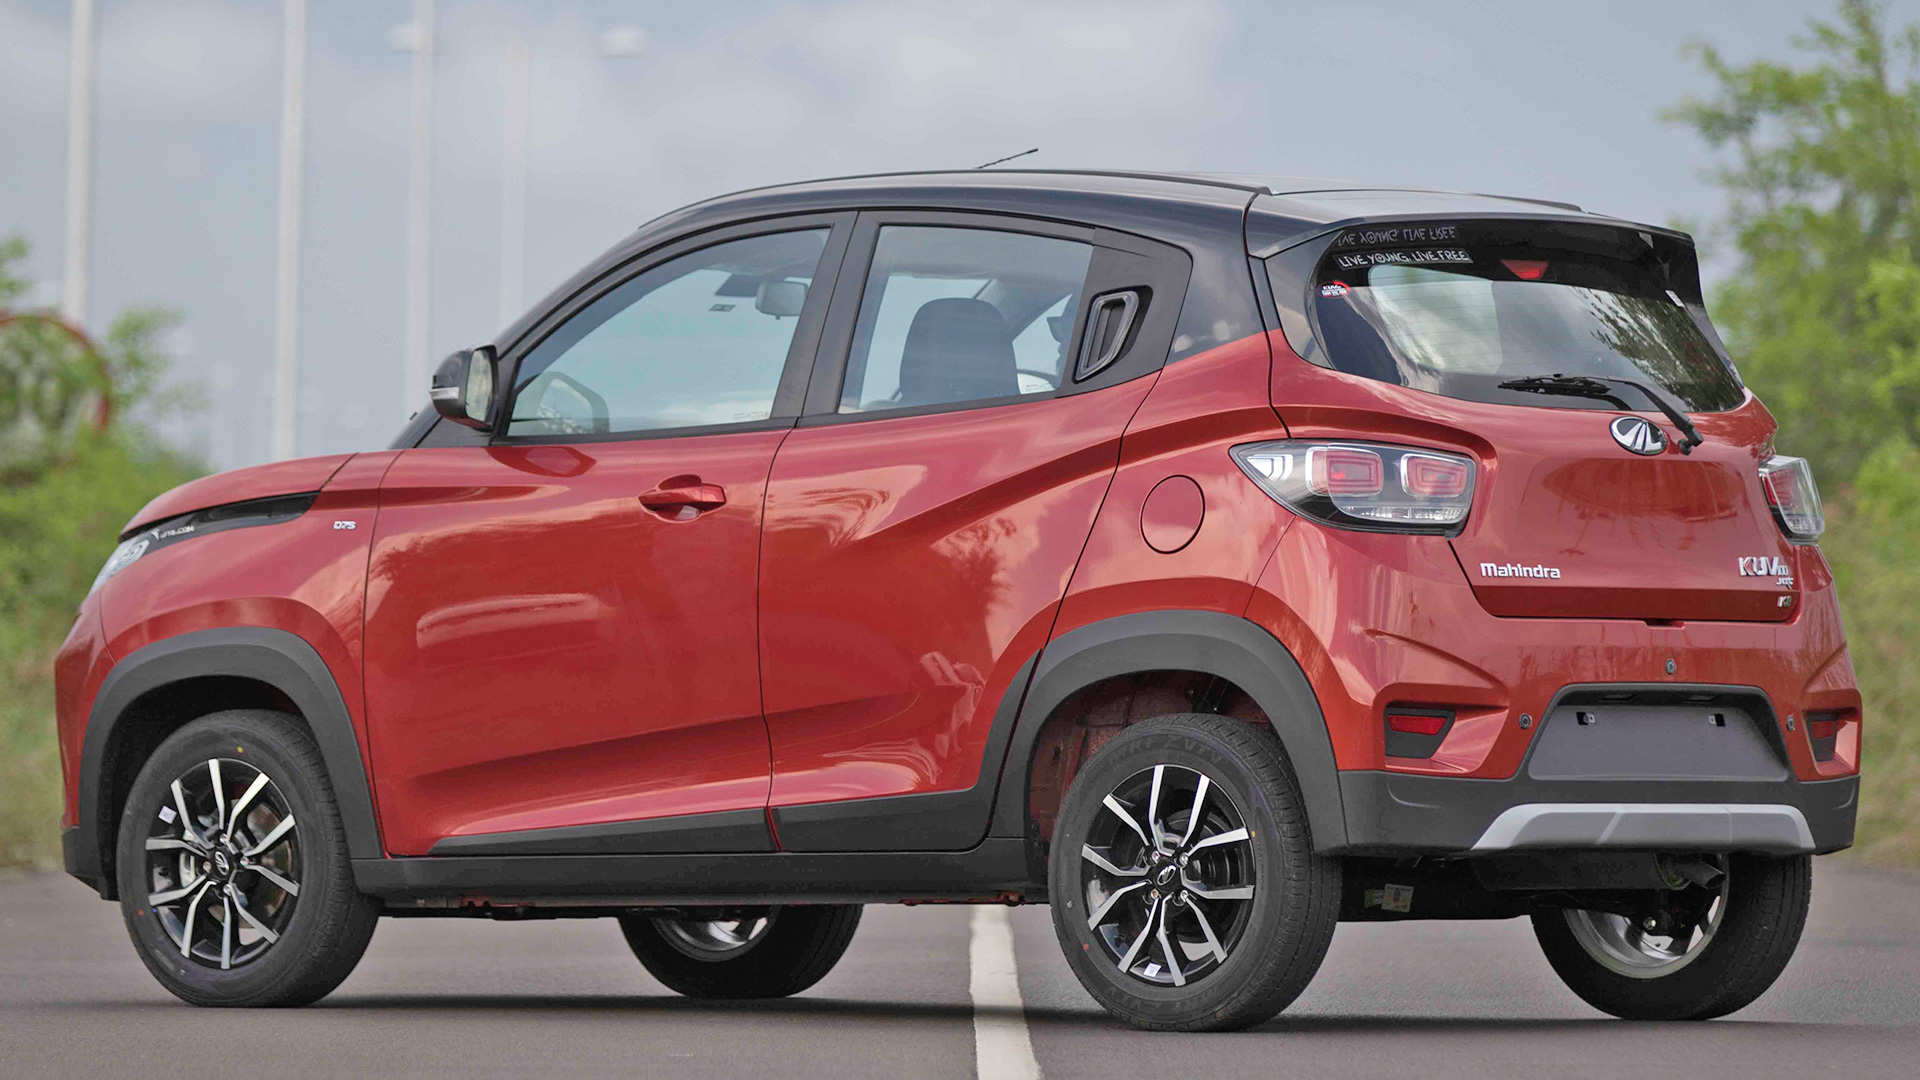 Full Force Diesel >> Mahindra KUV 100 NXT 2017 - Price, Mileage, Reviews, Specification, Gallery - Overdrive